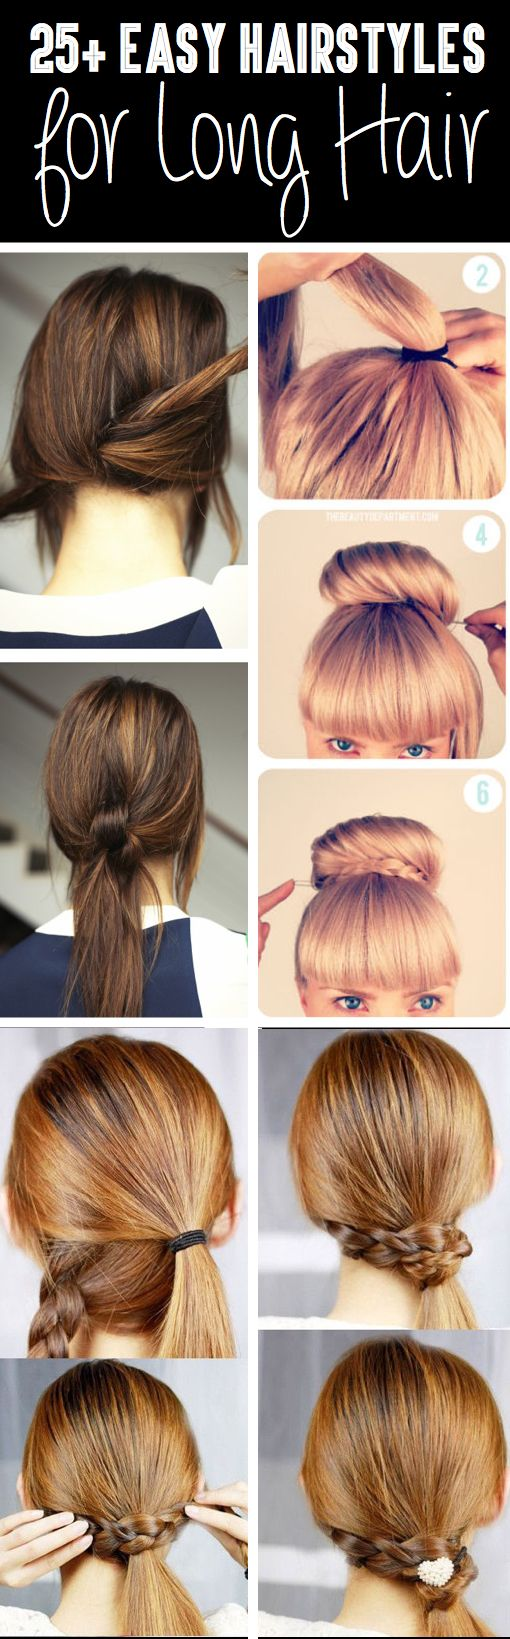 Fantastic Easy Hairstyles Hairstyle For Long Hair And Long Hair On Pinterest Short Hairstyles For Black Women Fulllsitofus